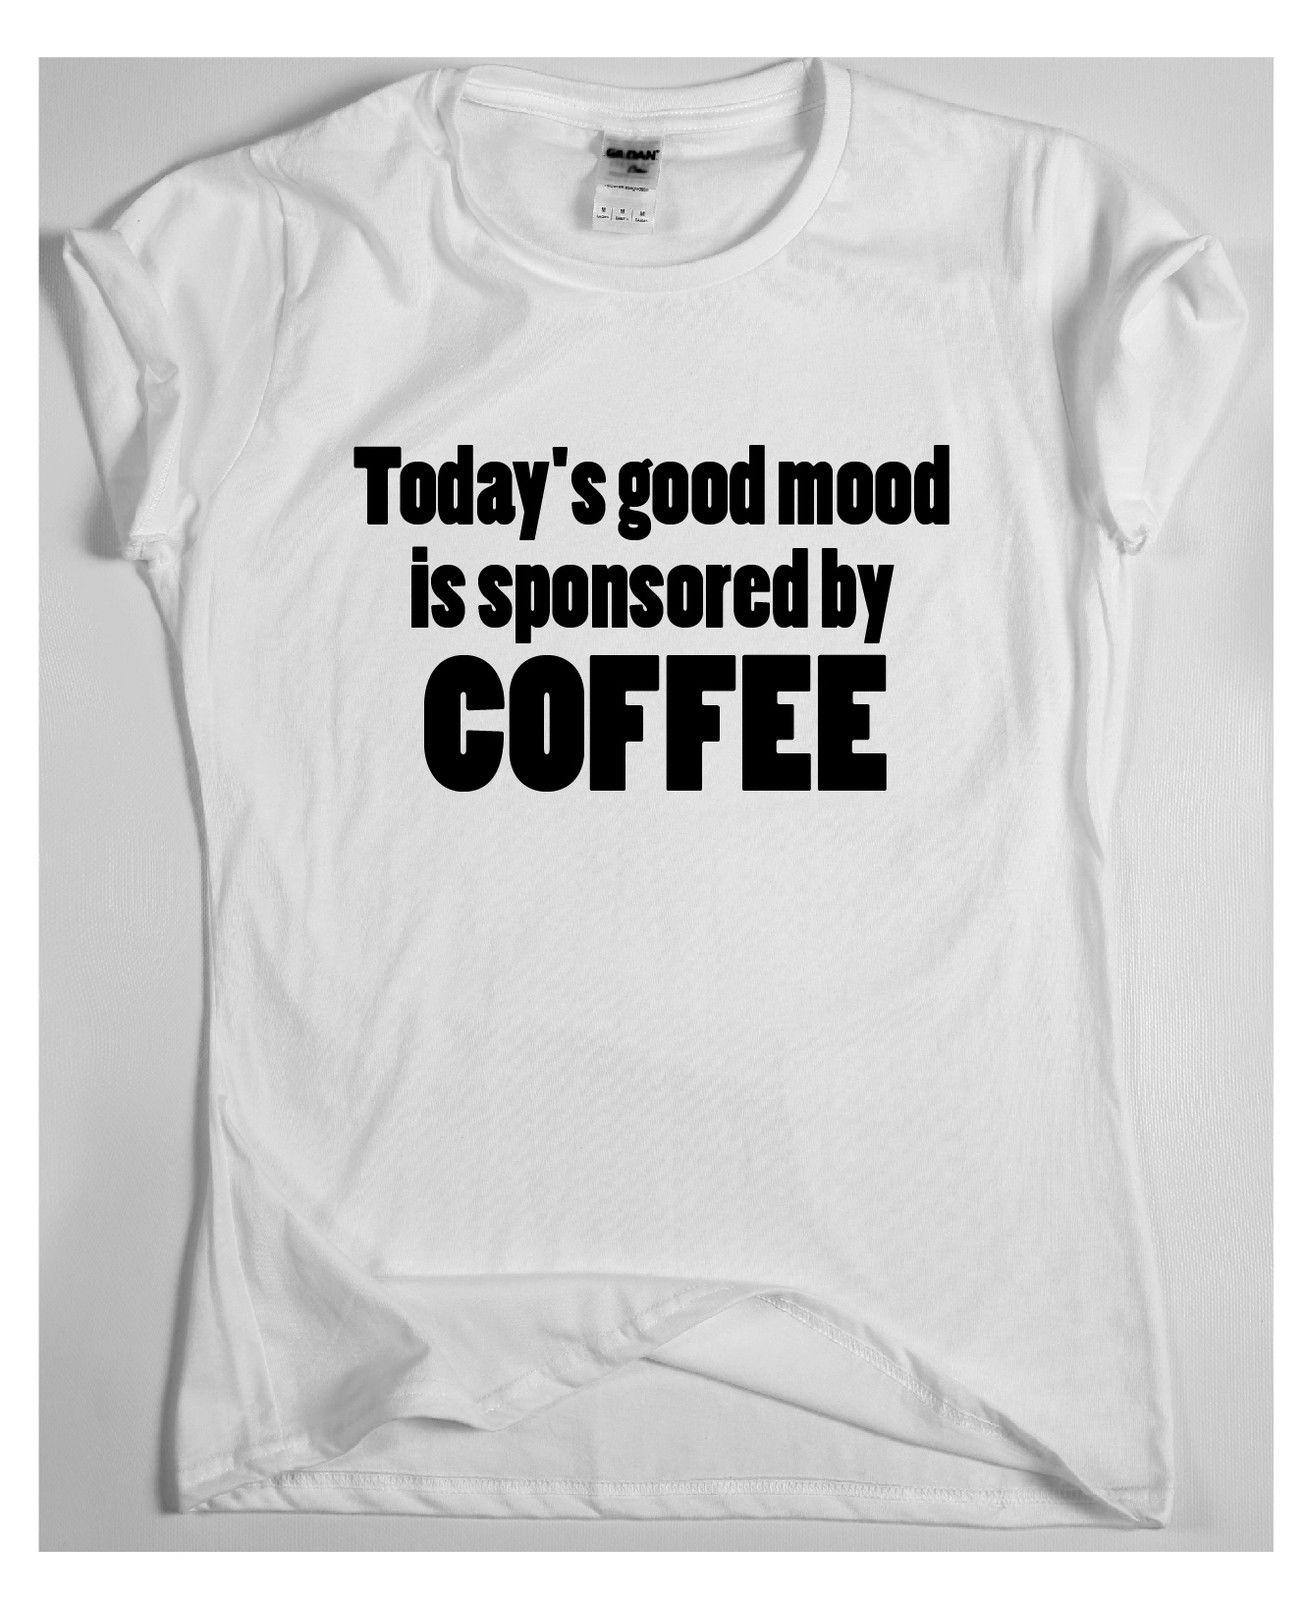 820df10c4bd Today s Mood - funny coffee saying T-shirt mens womens quote ladies slogan  top Casual male tshirt